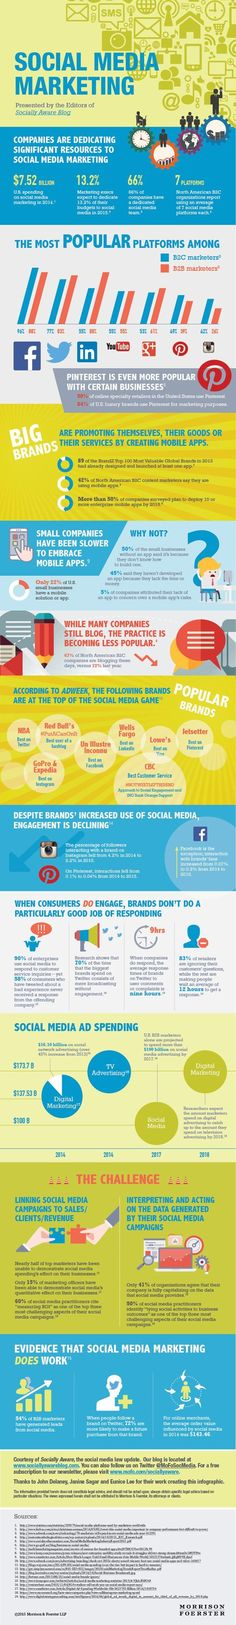 The Social Media Marketing State of Play [Infographic] | Social Media Today